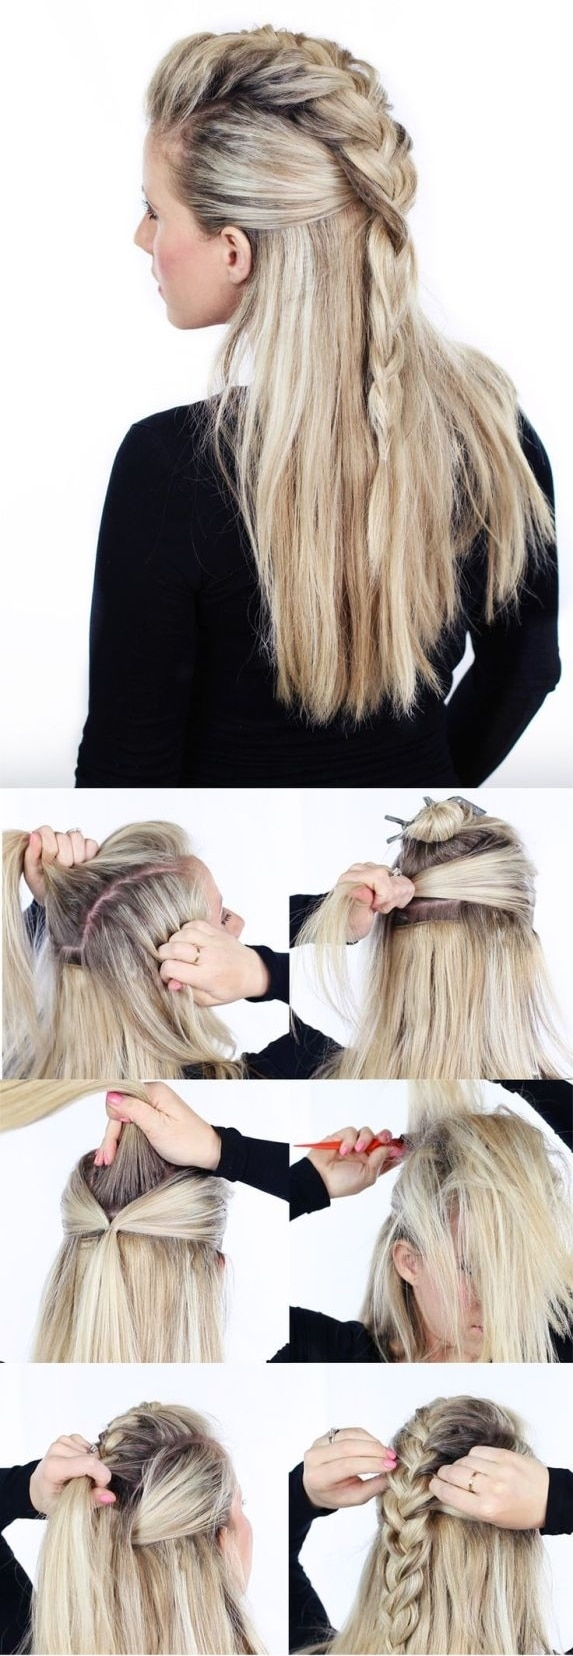 Coiffure fausse crête